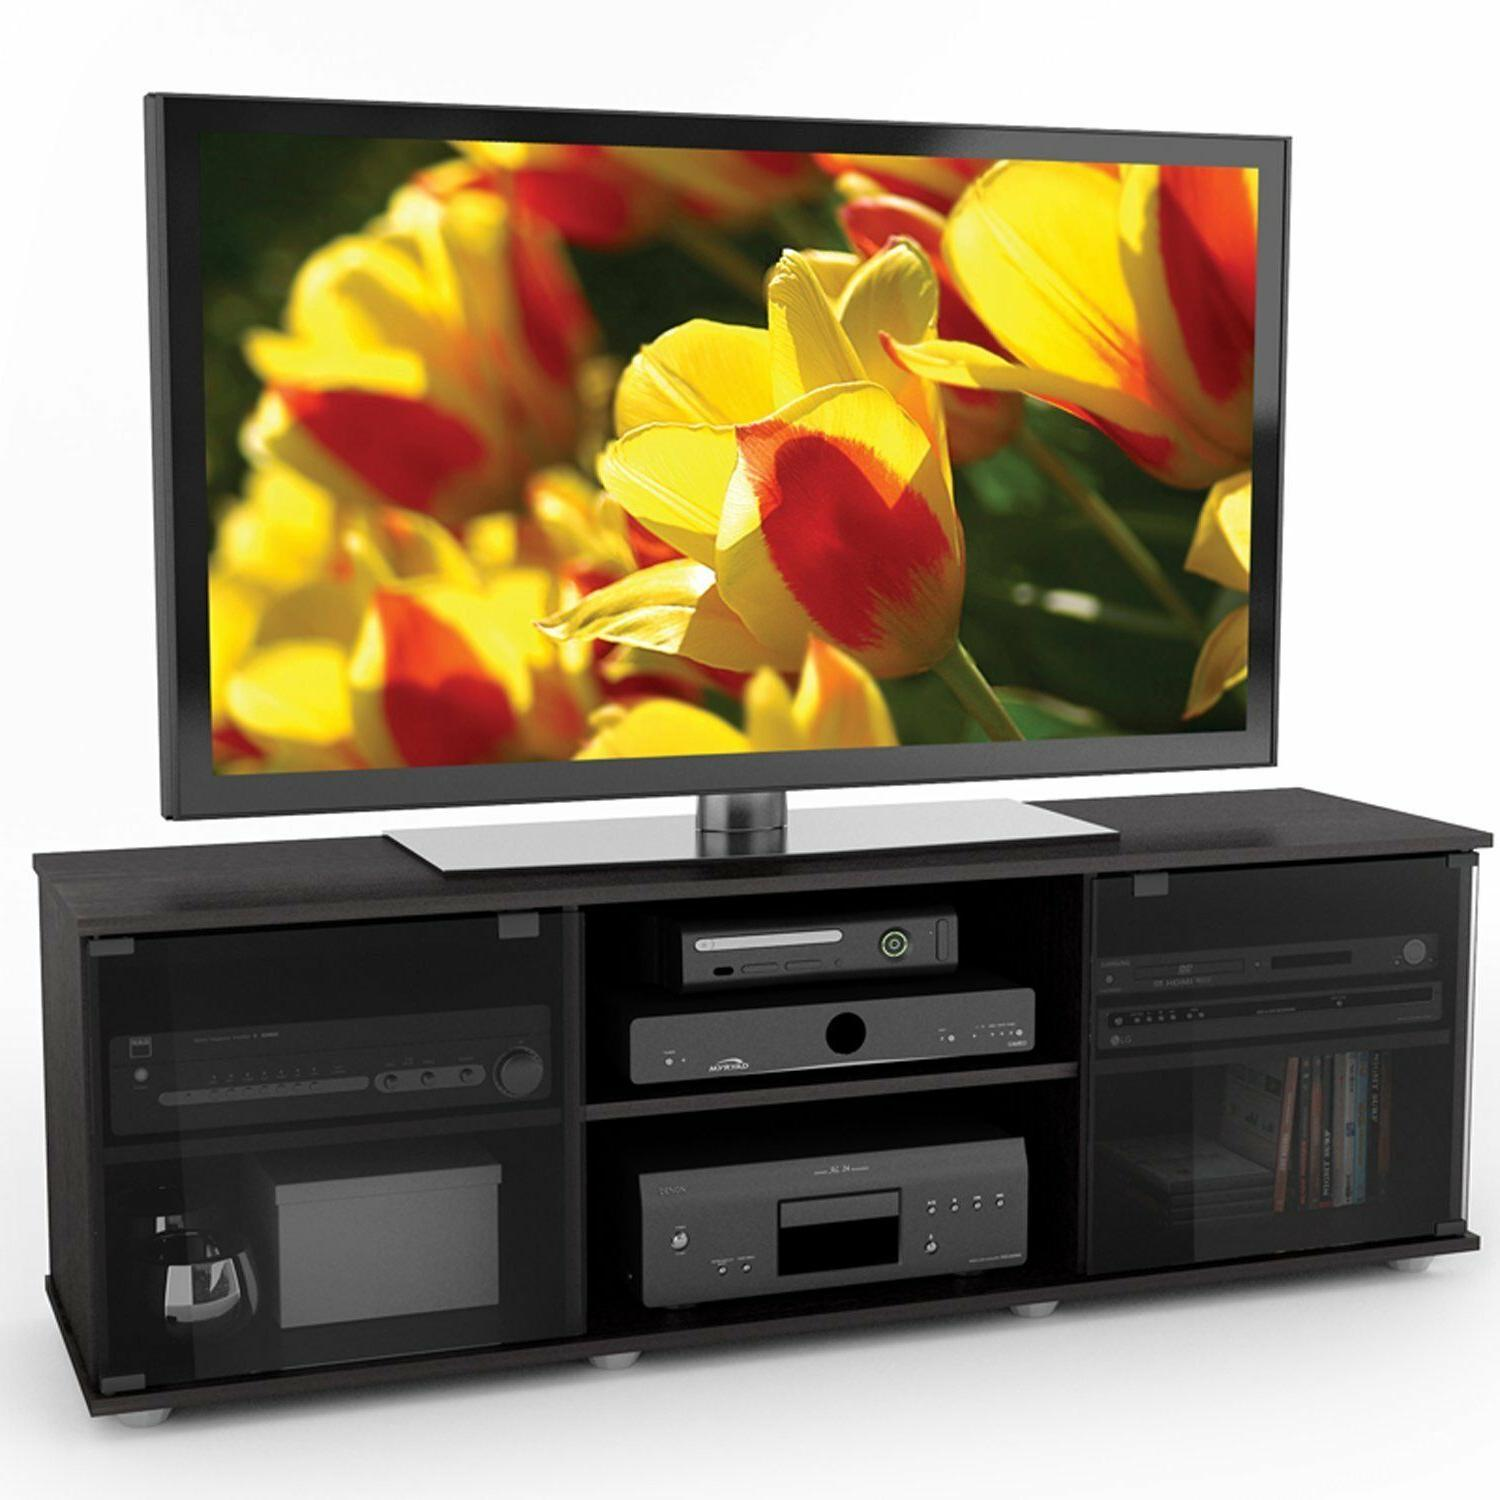 Contemporary Stand Entertainment Center Home Television